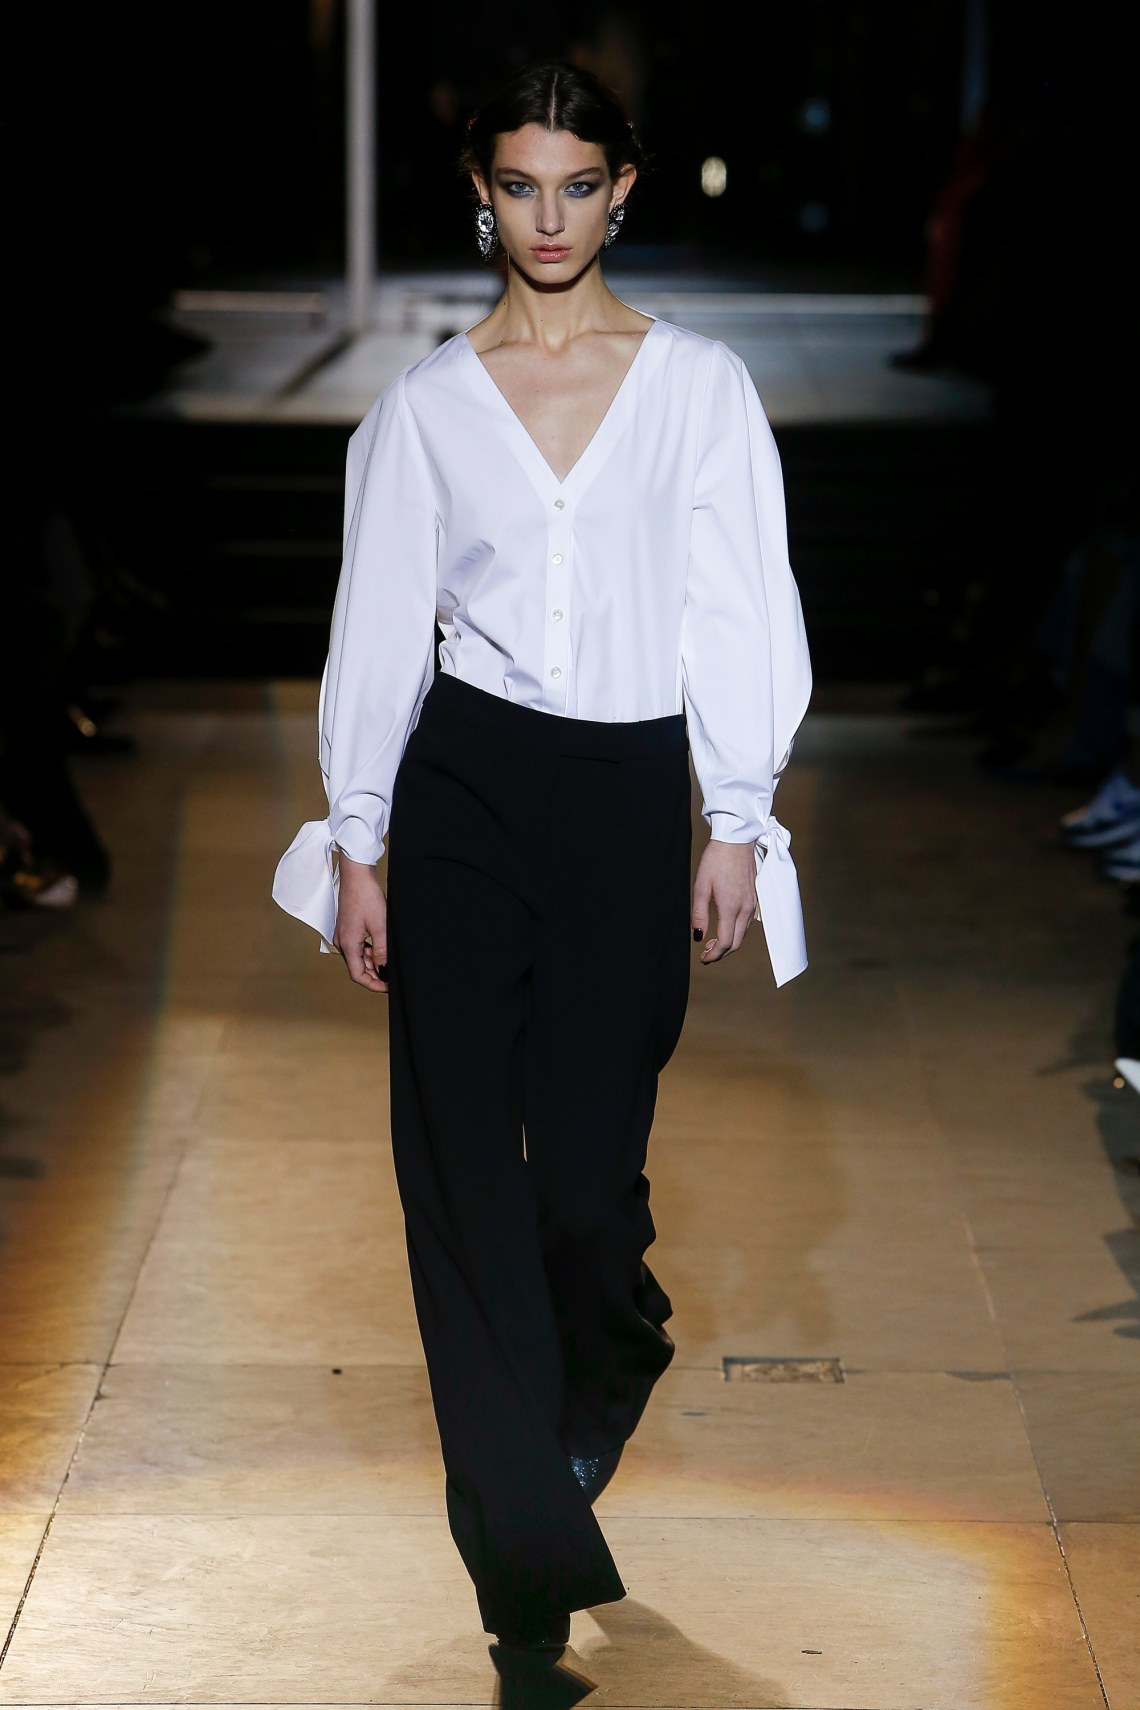 carolina herrera- fall 2018 ready to wear collection- how to style a white blouse